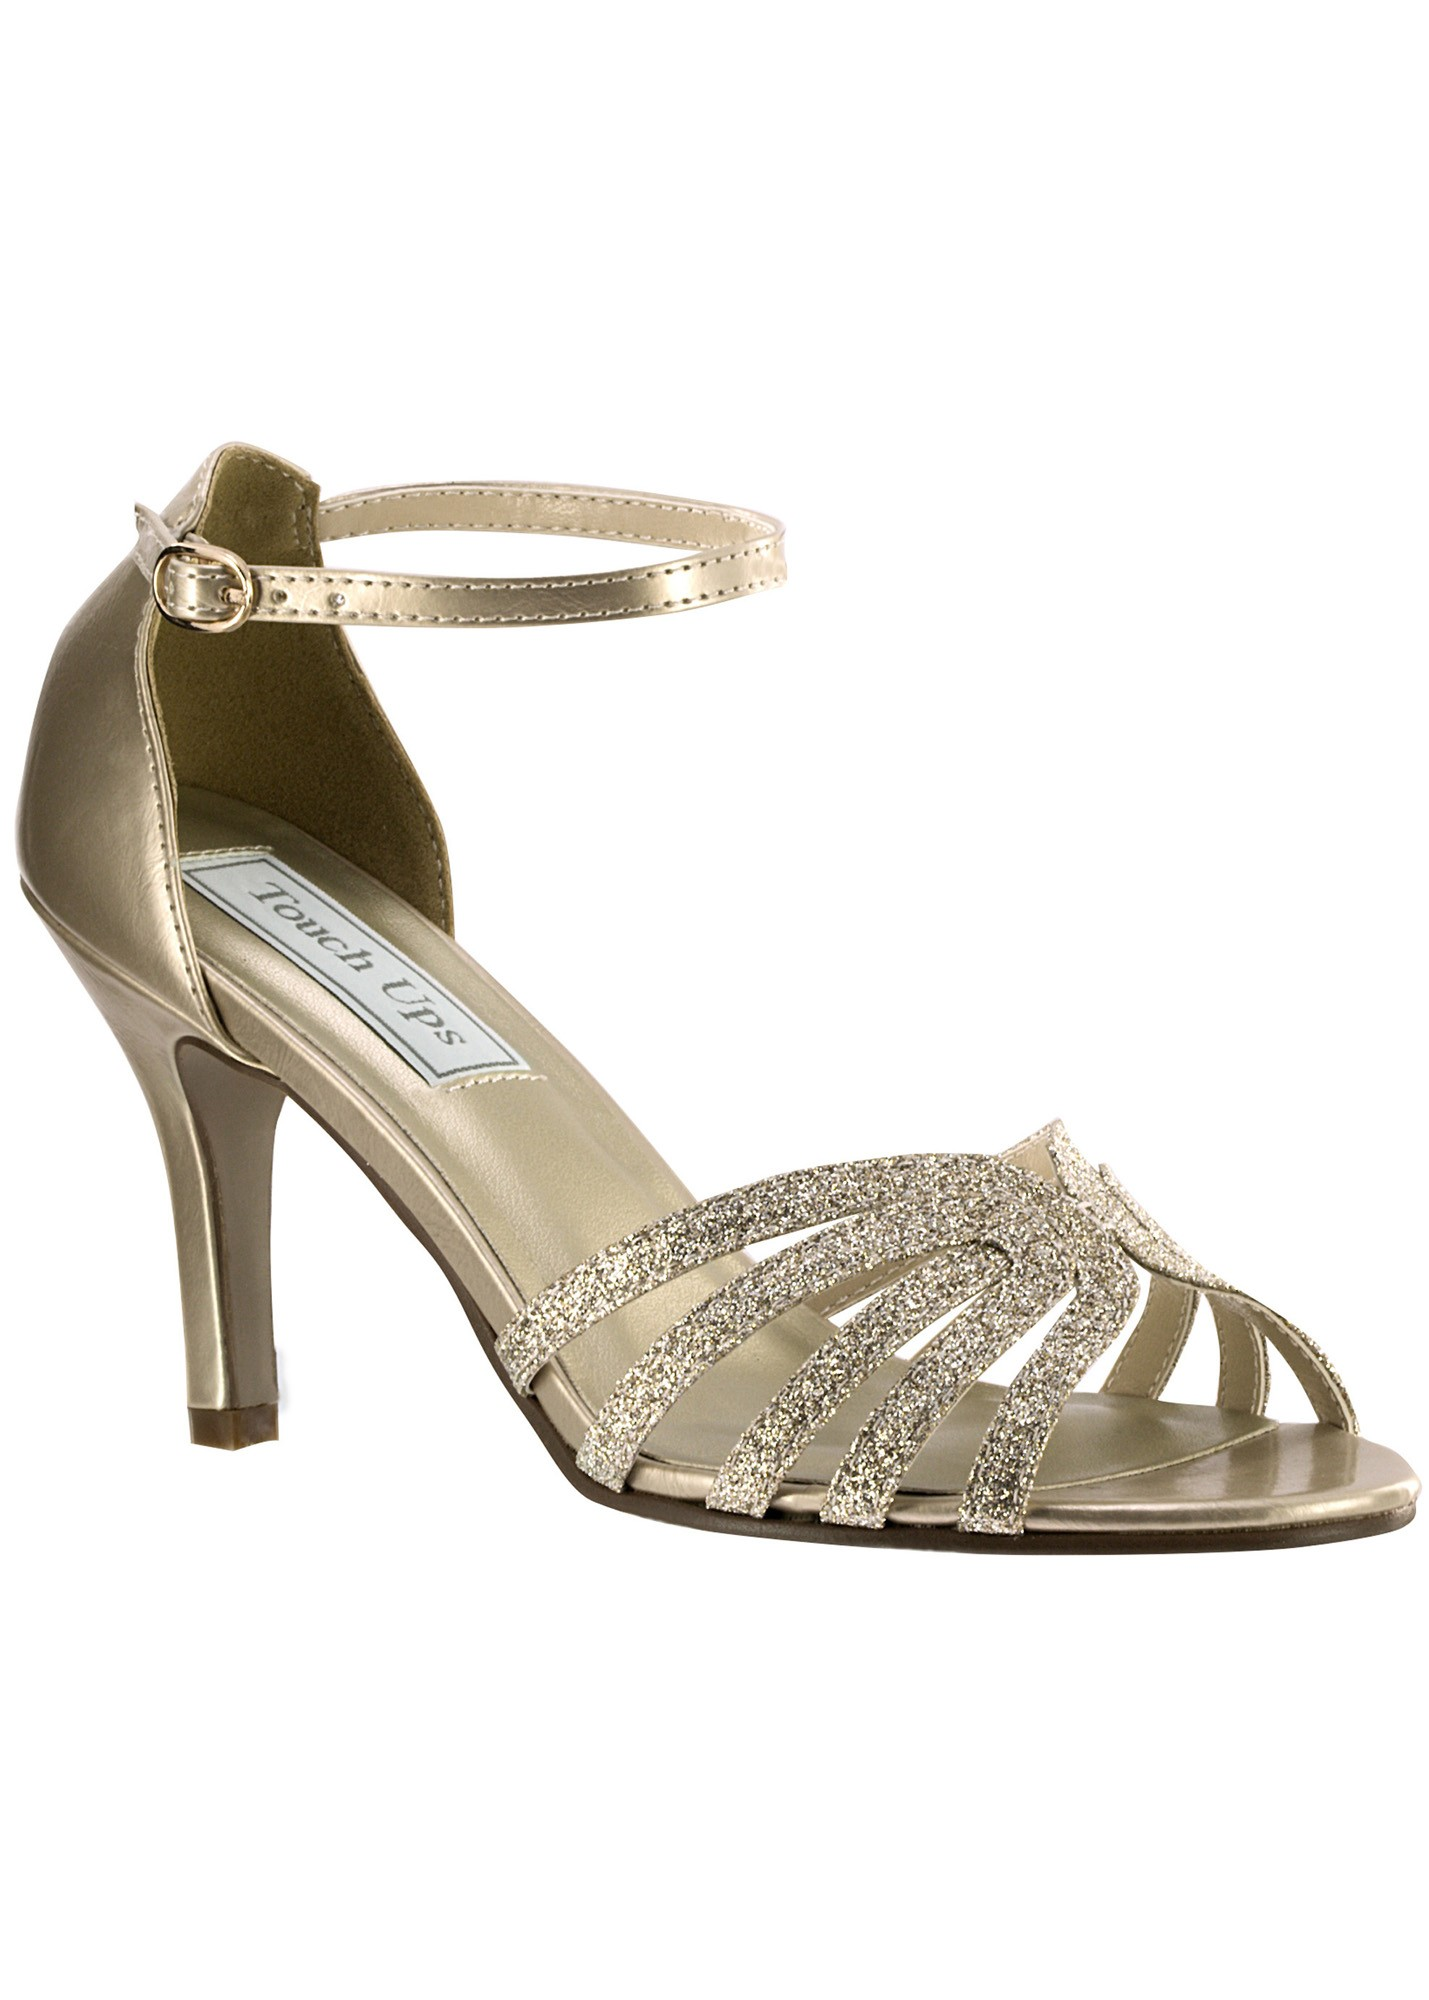 Touch Ups Rapture 4145 - Sparkly Low Heel Open Toe Sandals - RissyRoos.com 217d595e49